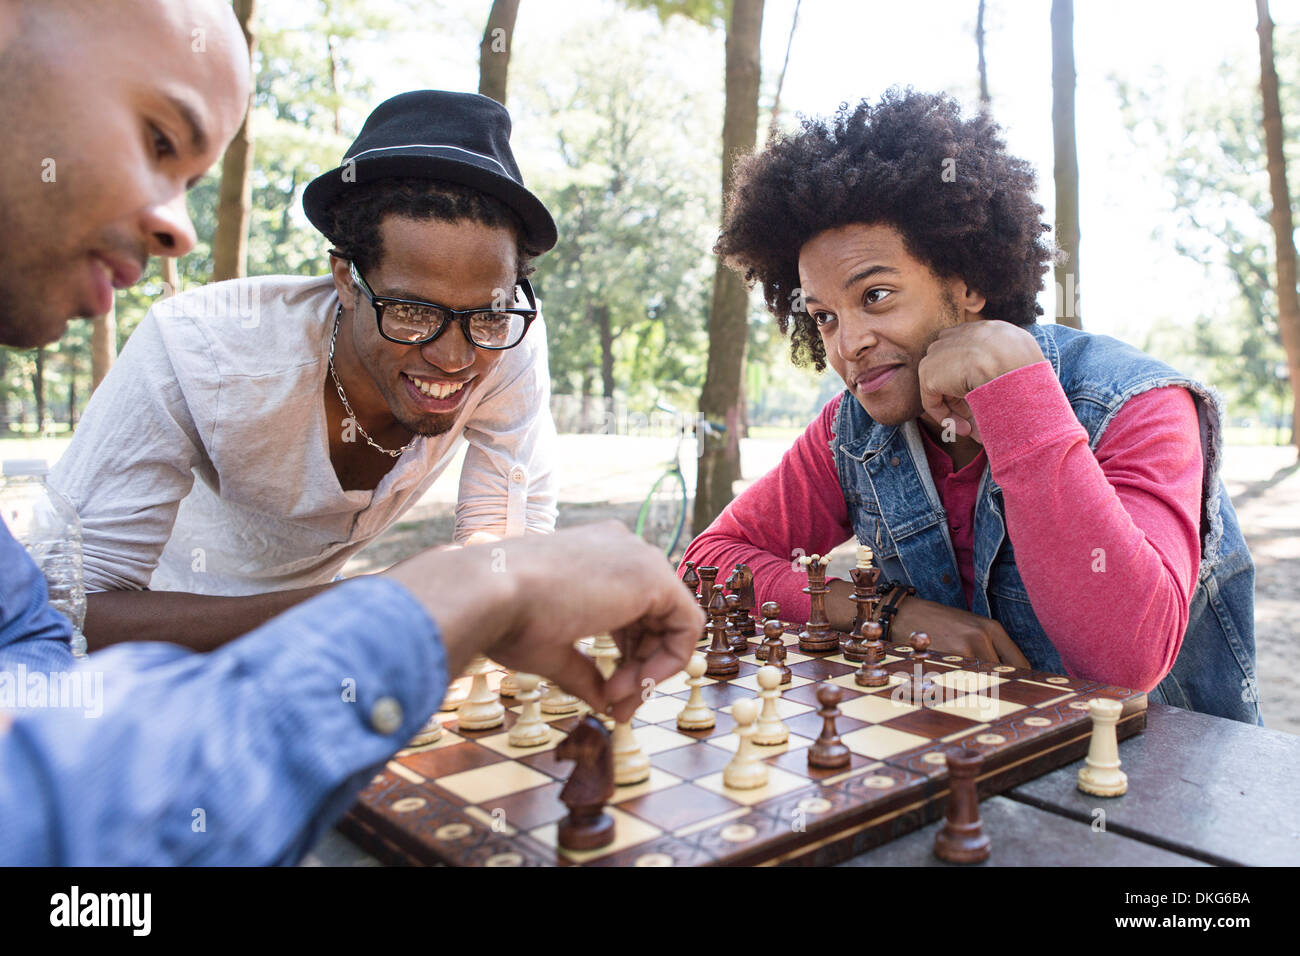 Three young men playing chess in park - Stock Image